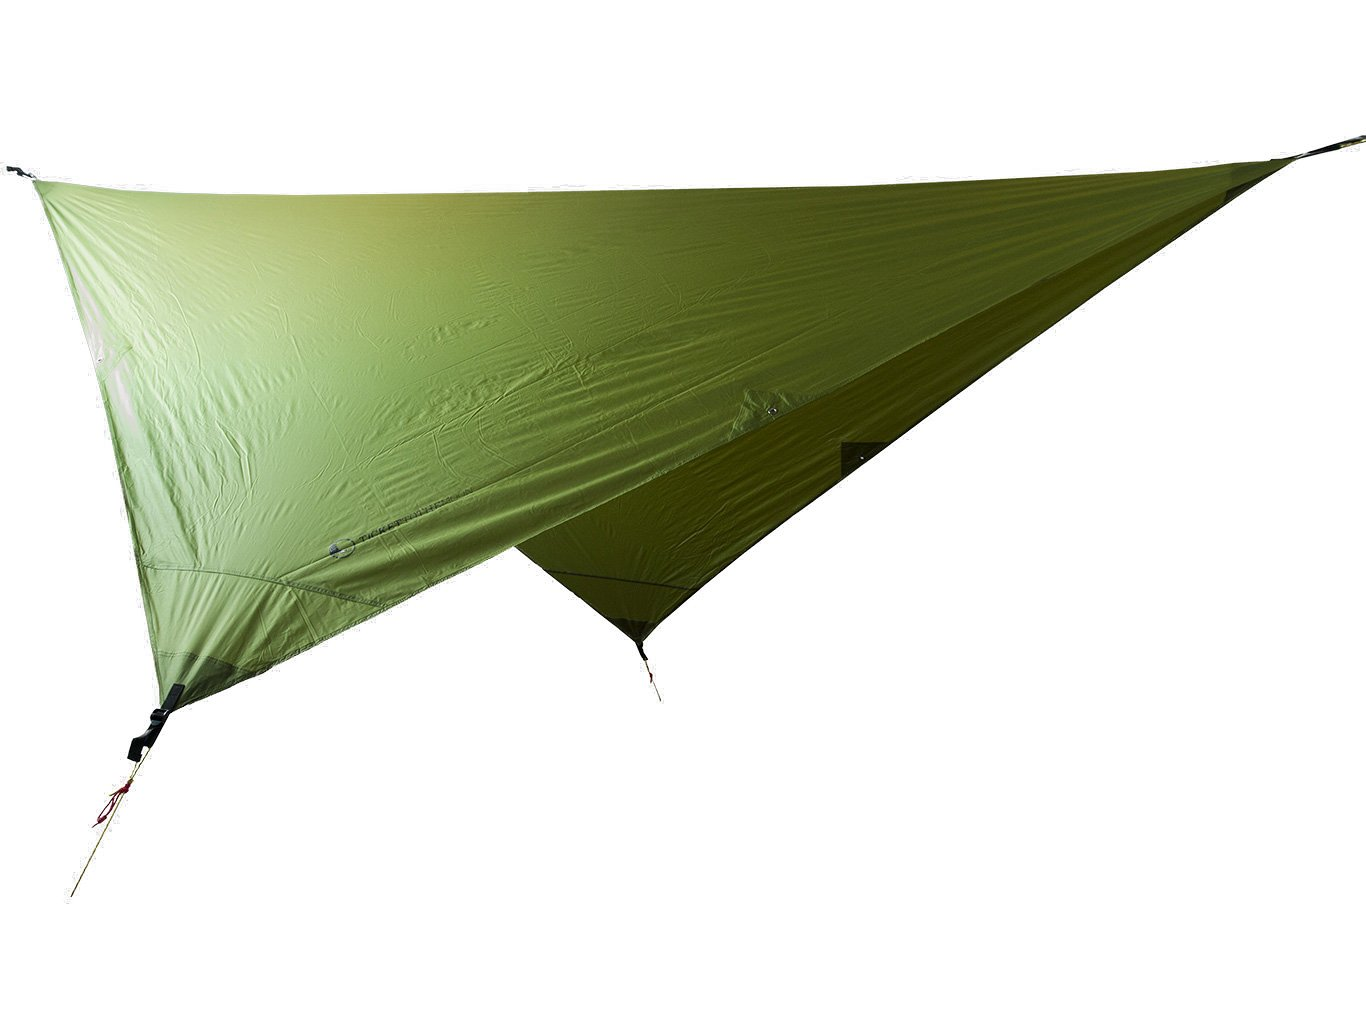 Hammock Tent| Outdoor Accessories | Ticket To The Moon